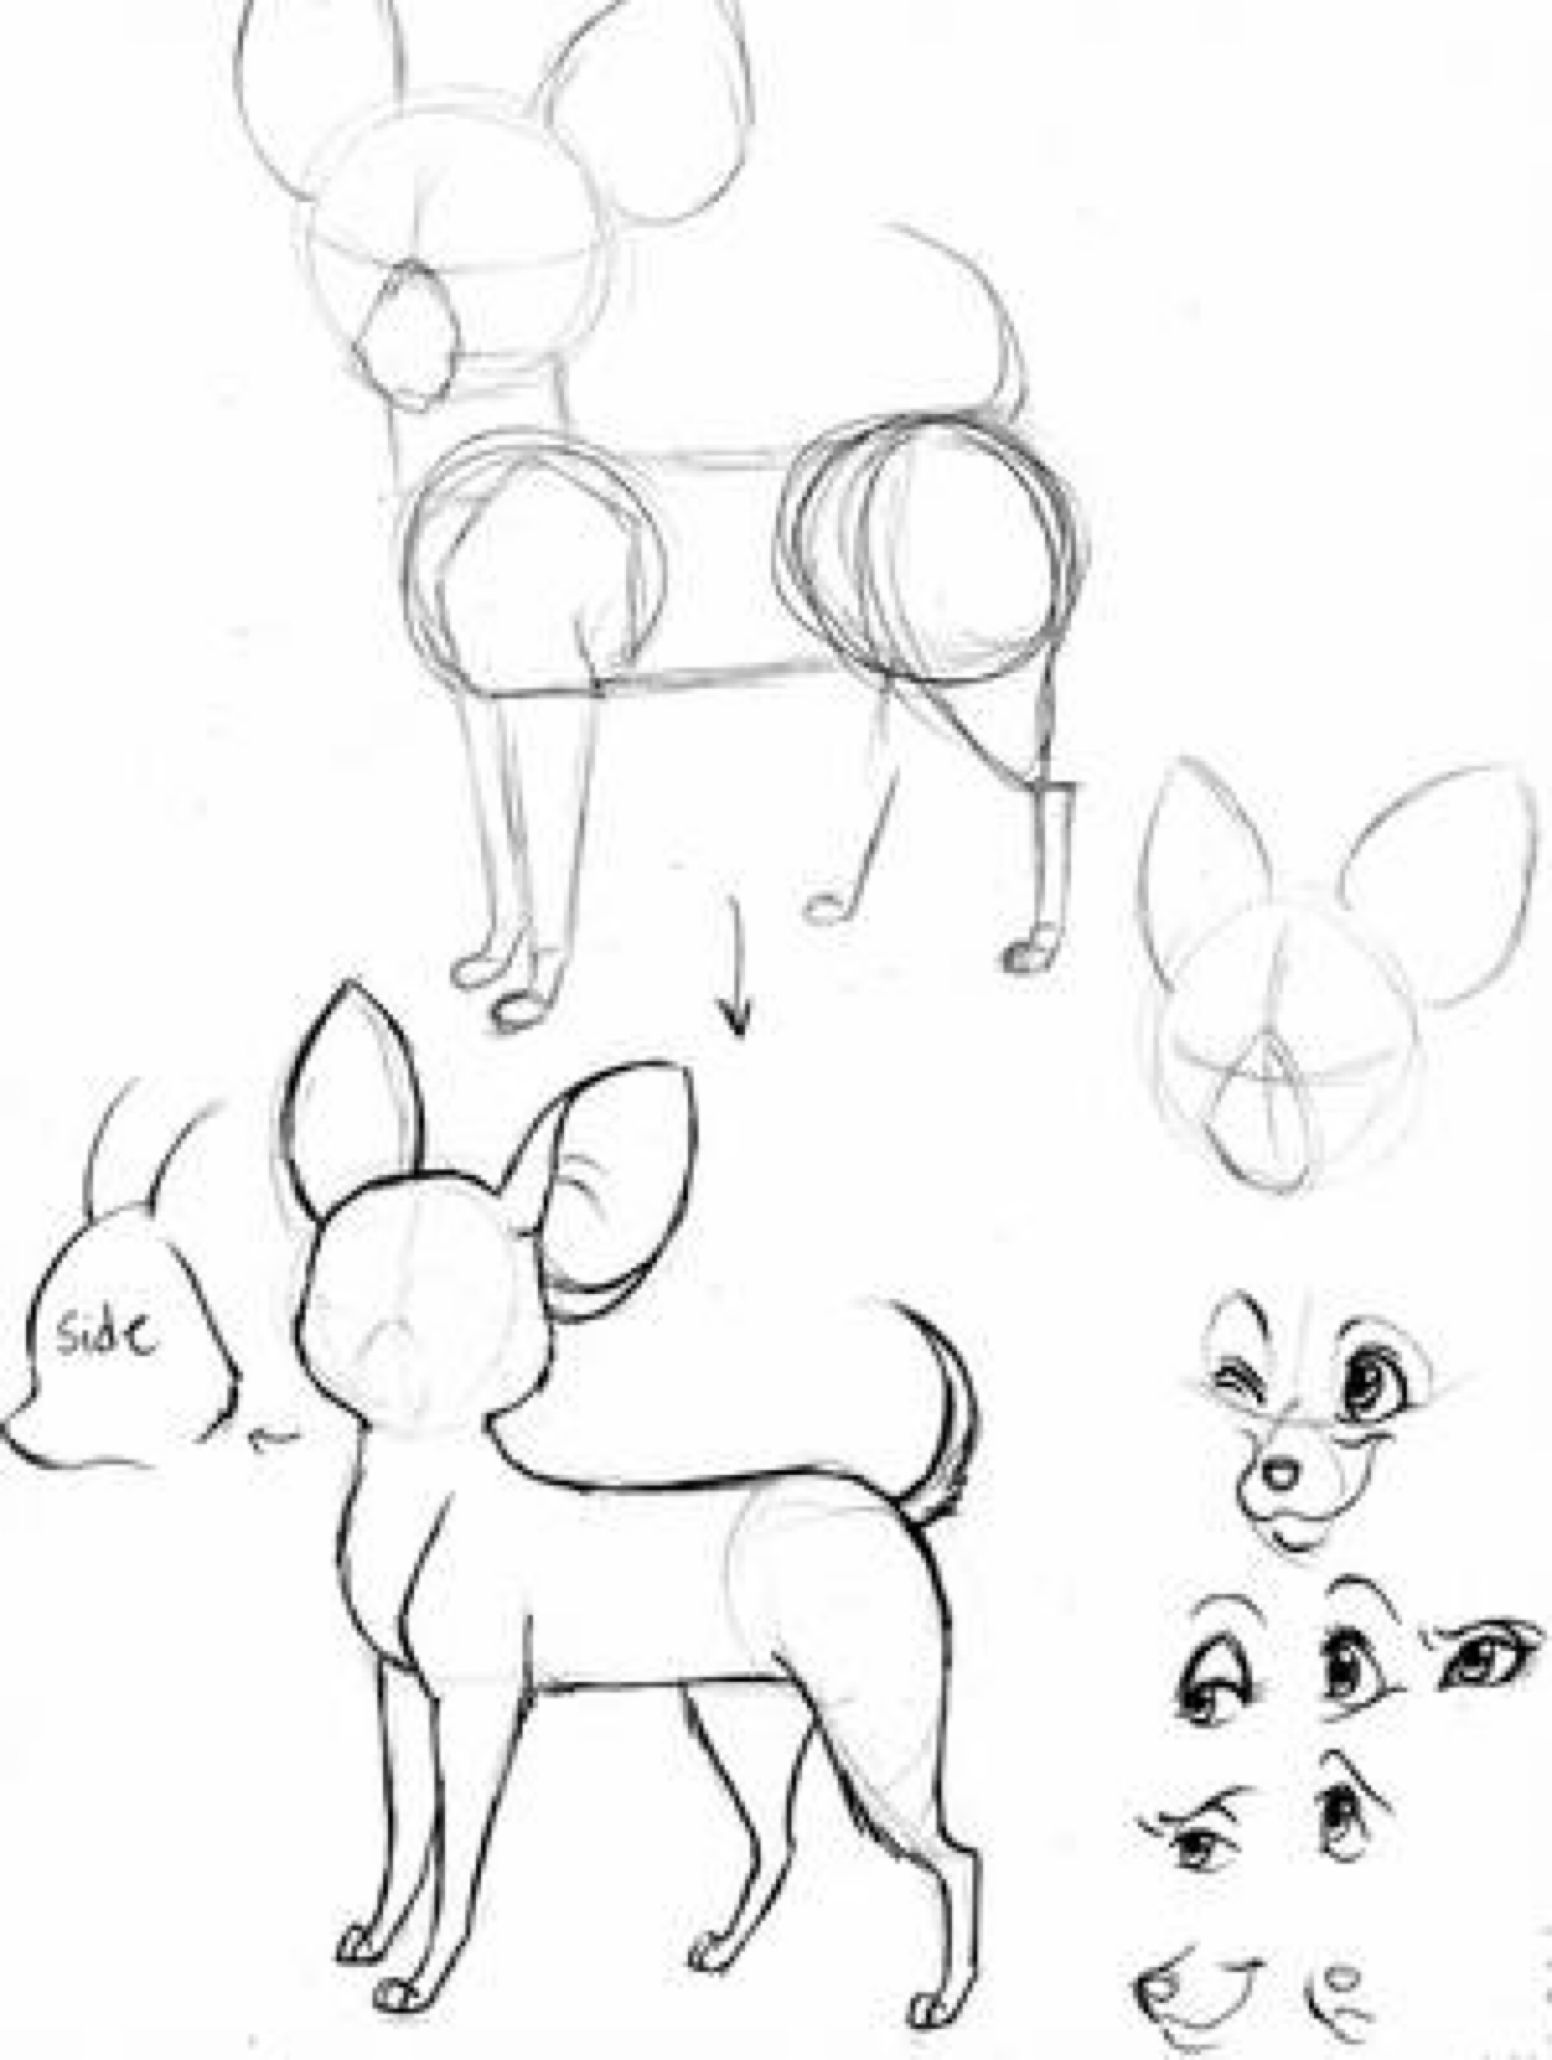 Chihuahua Tutorial By Foxsnout45 On Deviantart Chihuahua Art Chihuahua Drawing Animal Drawings